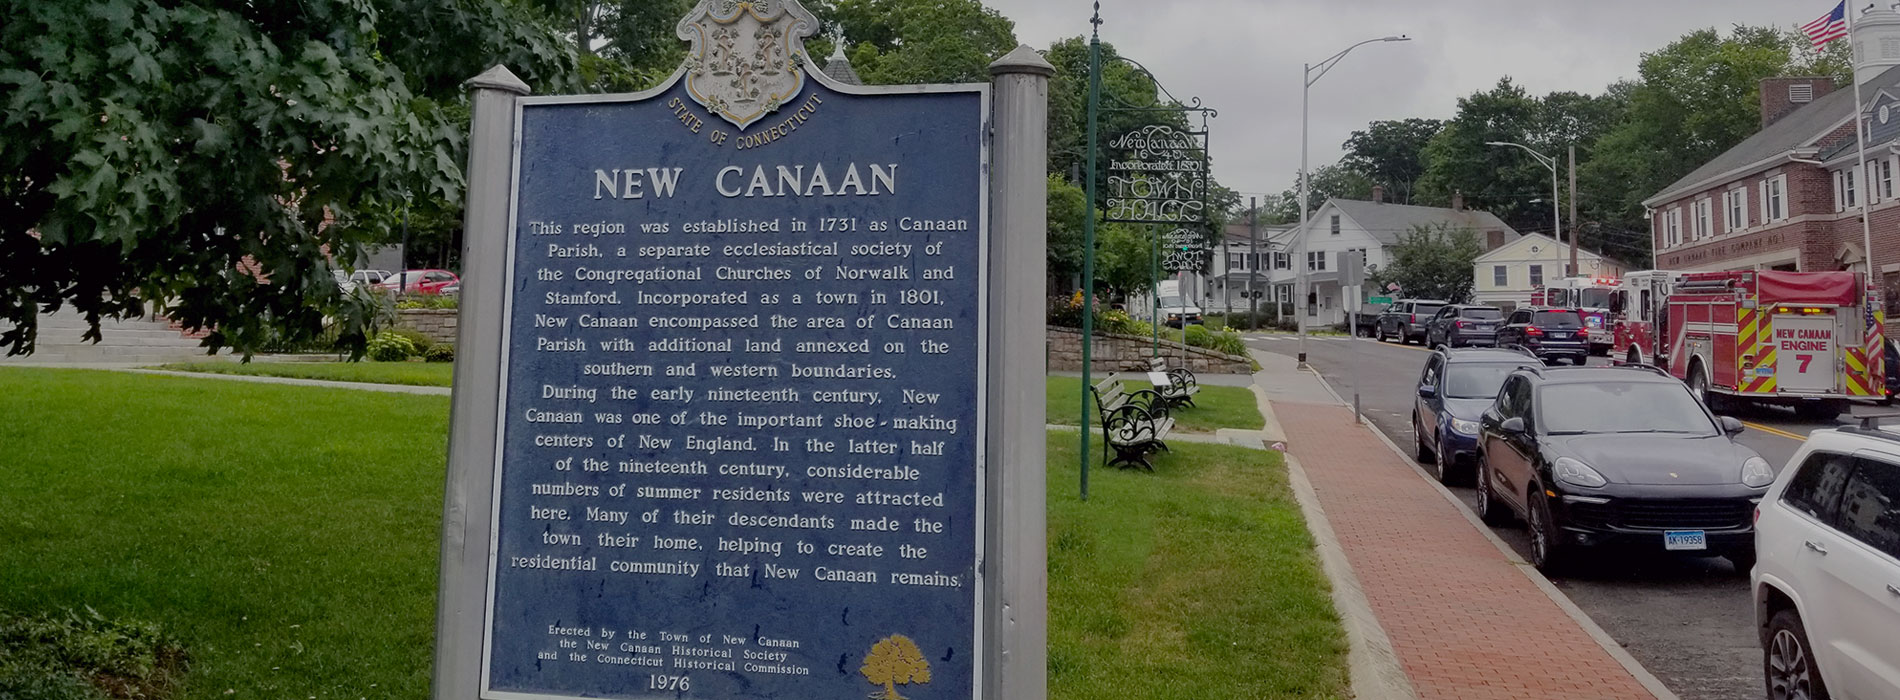 The Exchange Club - New Canaan